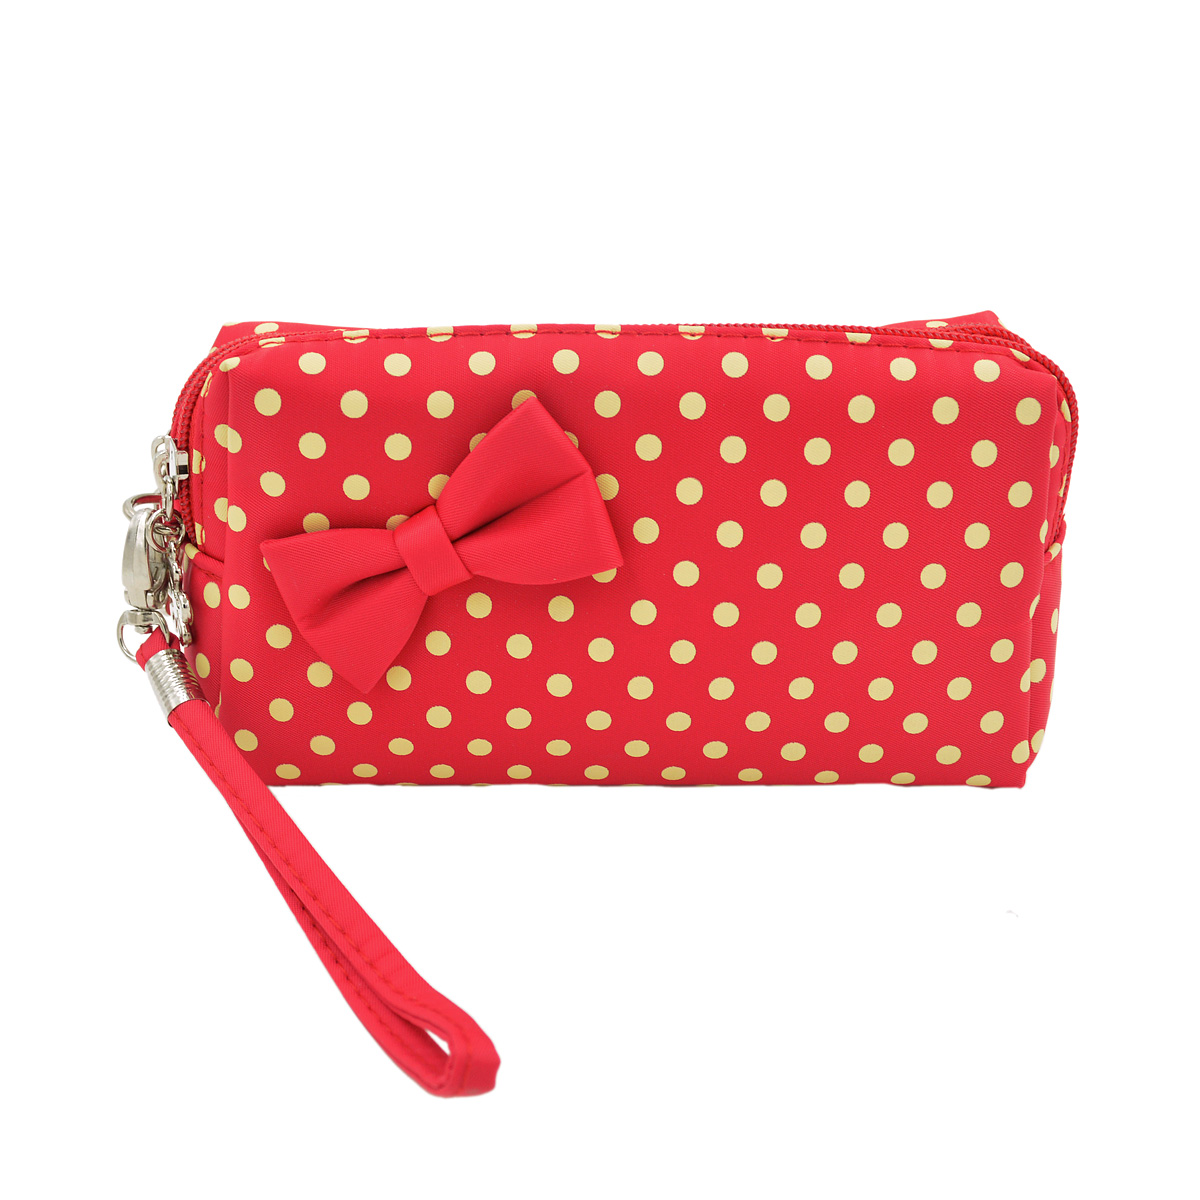 Premium Small Polka Dot Bow Double Zip Wristlet Cosmetic Makeup Bag